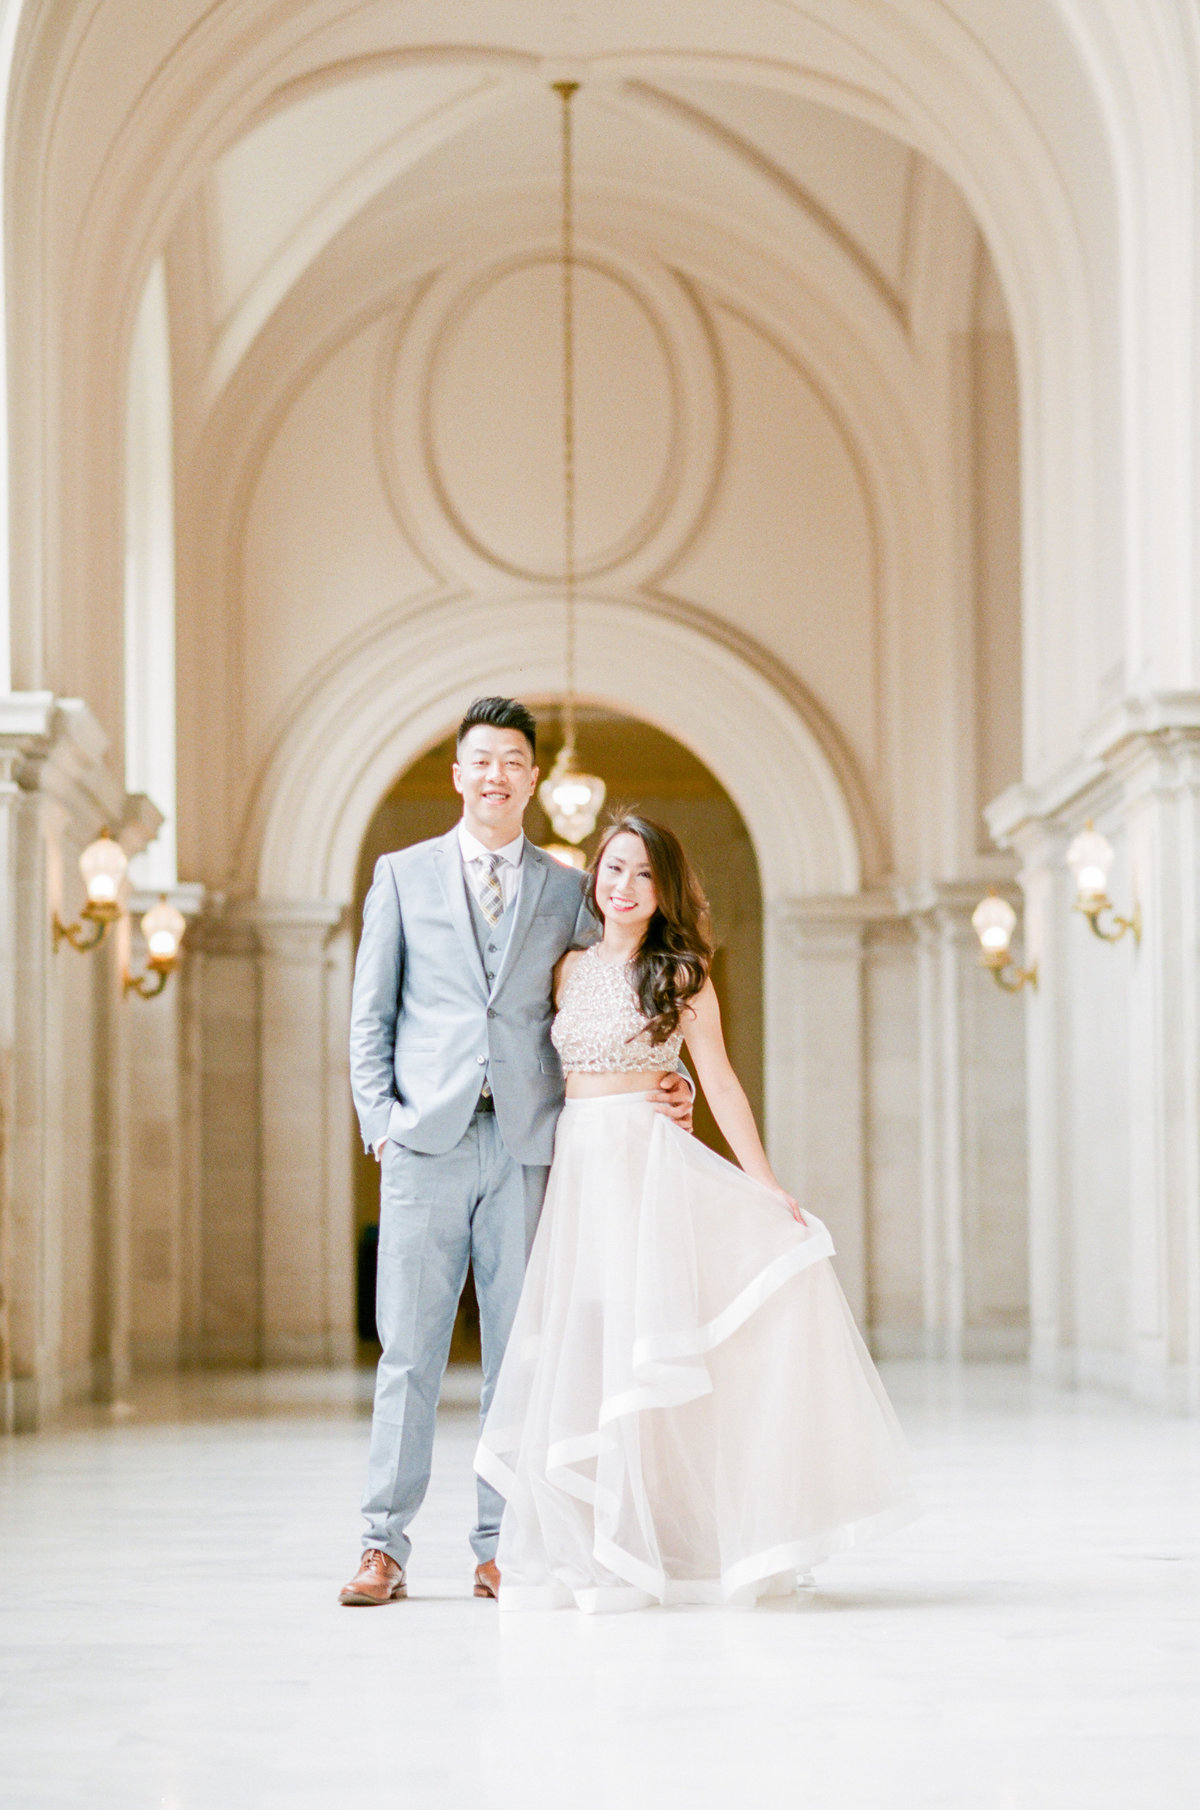 Top San Francisco Fine Art Wedding Photography Evonne and Darren